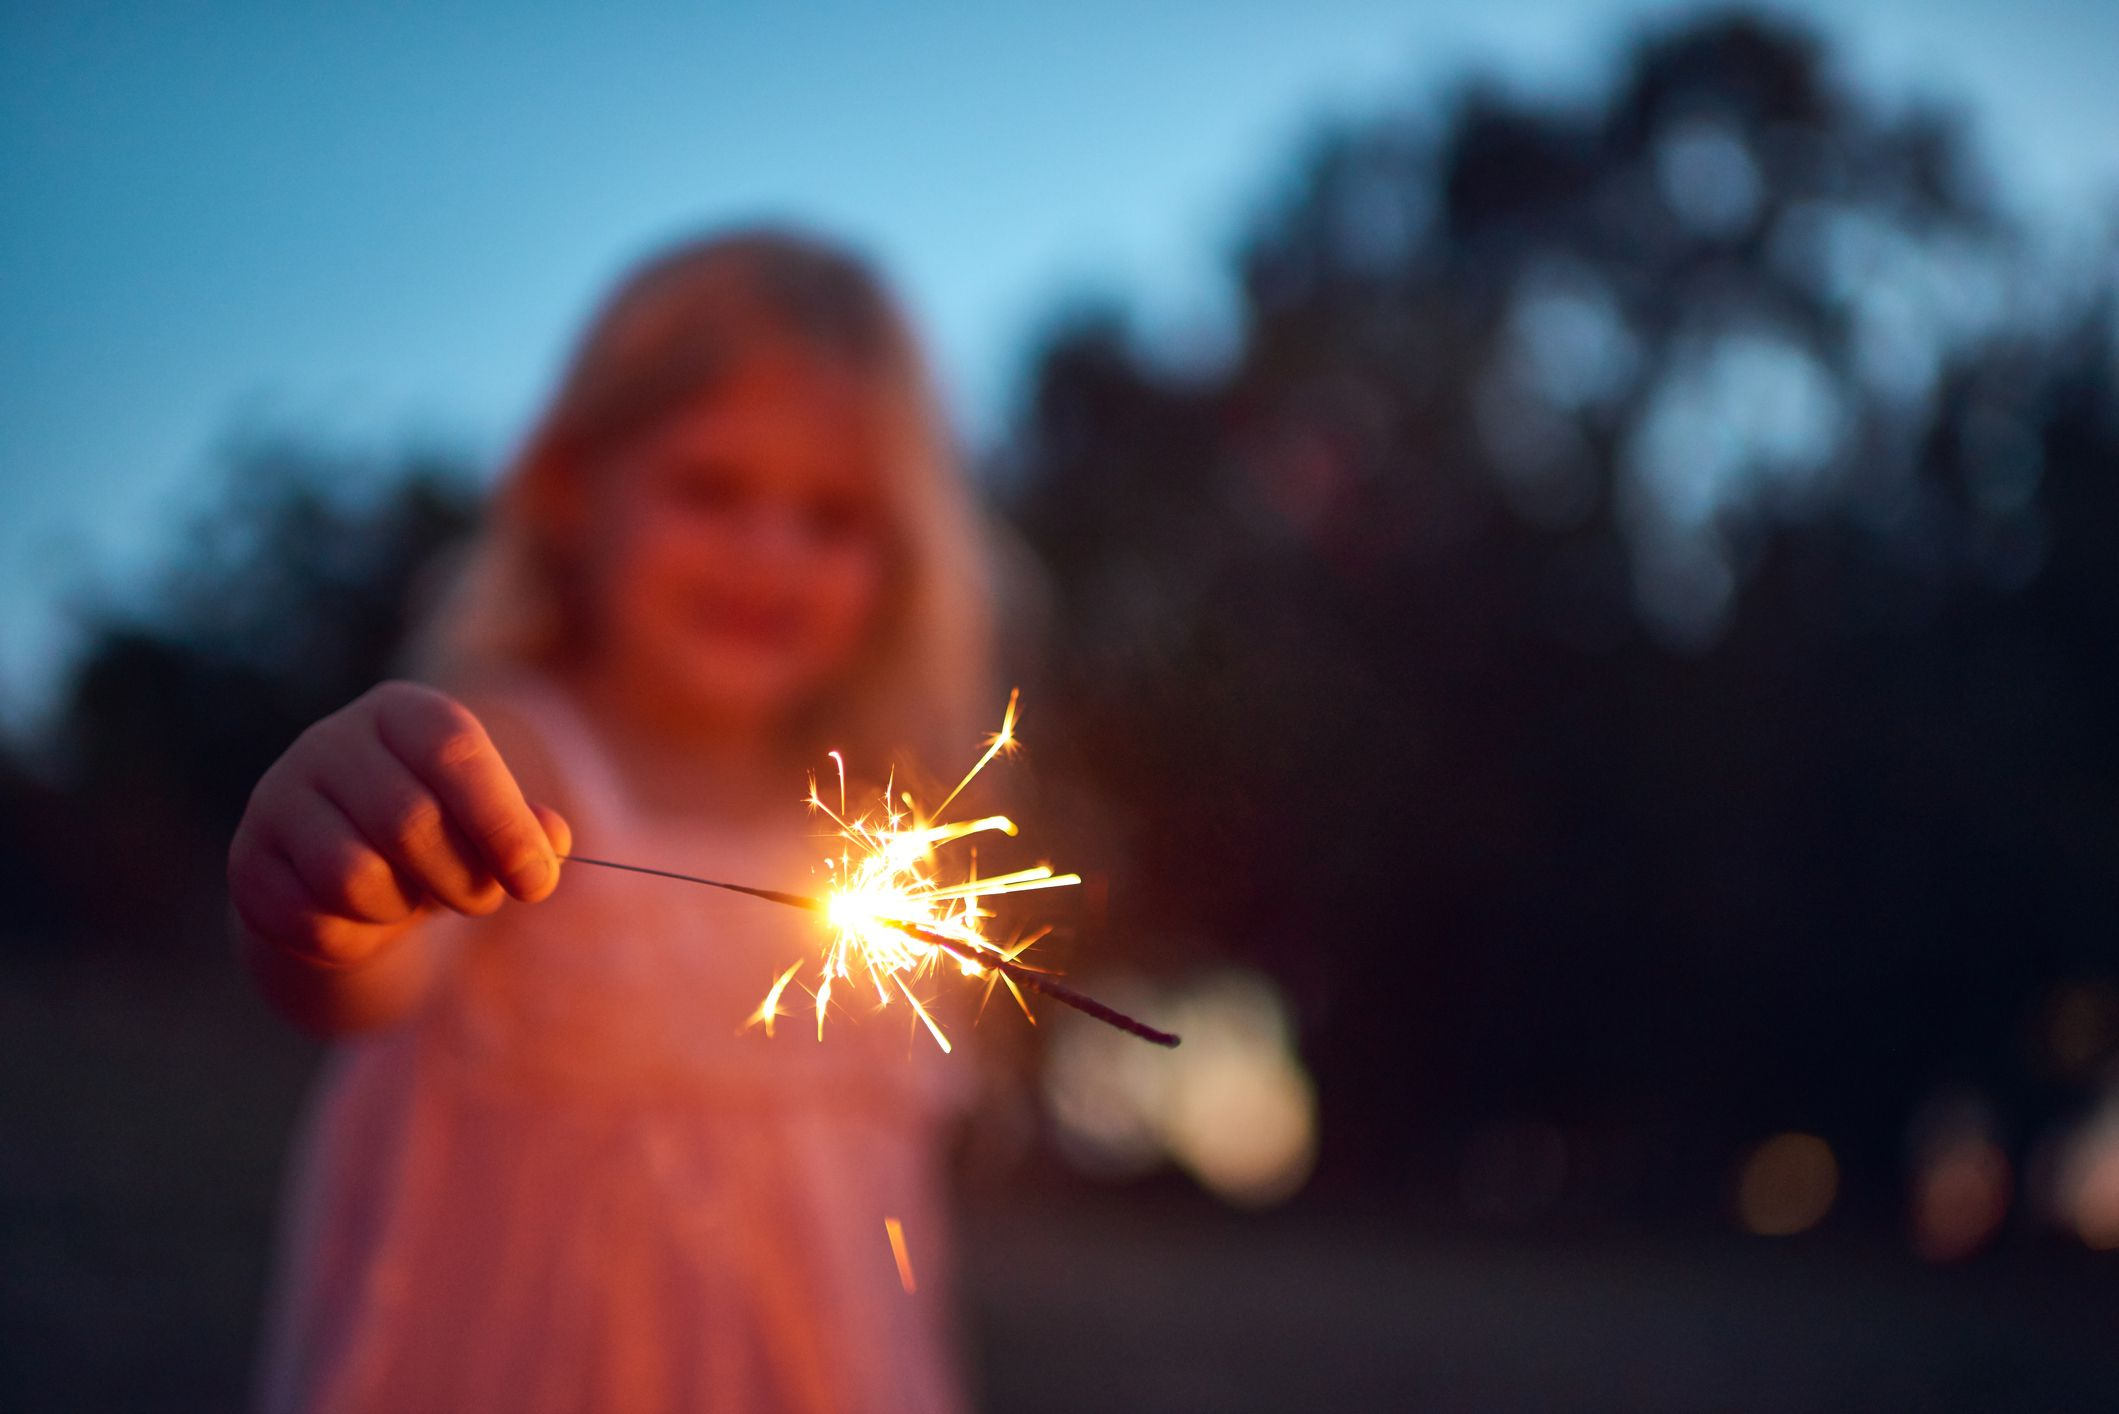 A girl playing with a sprakler firework